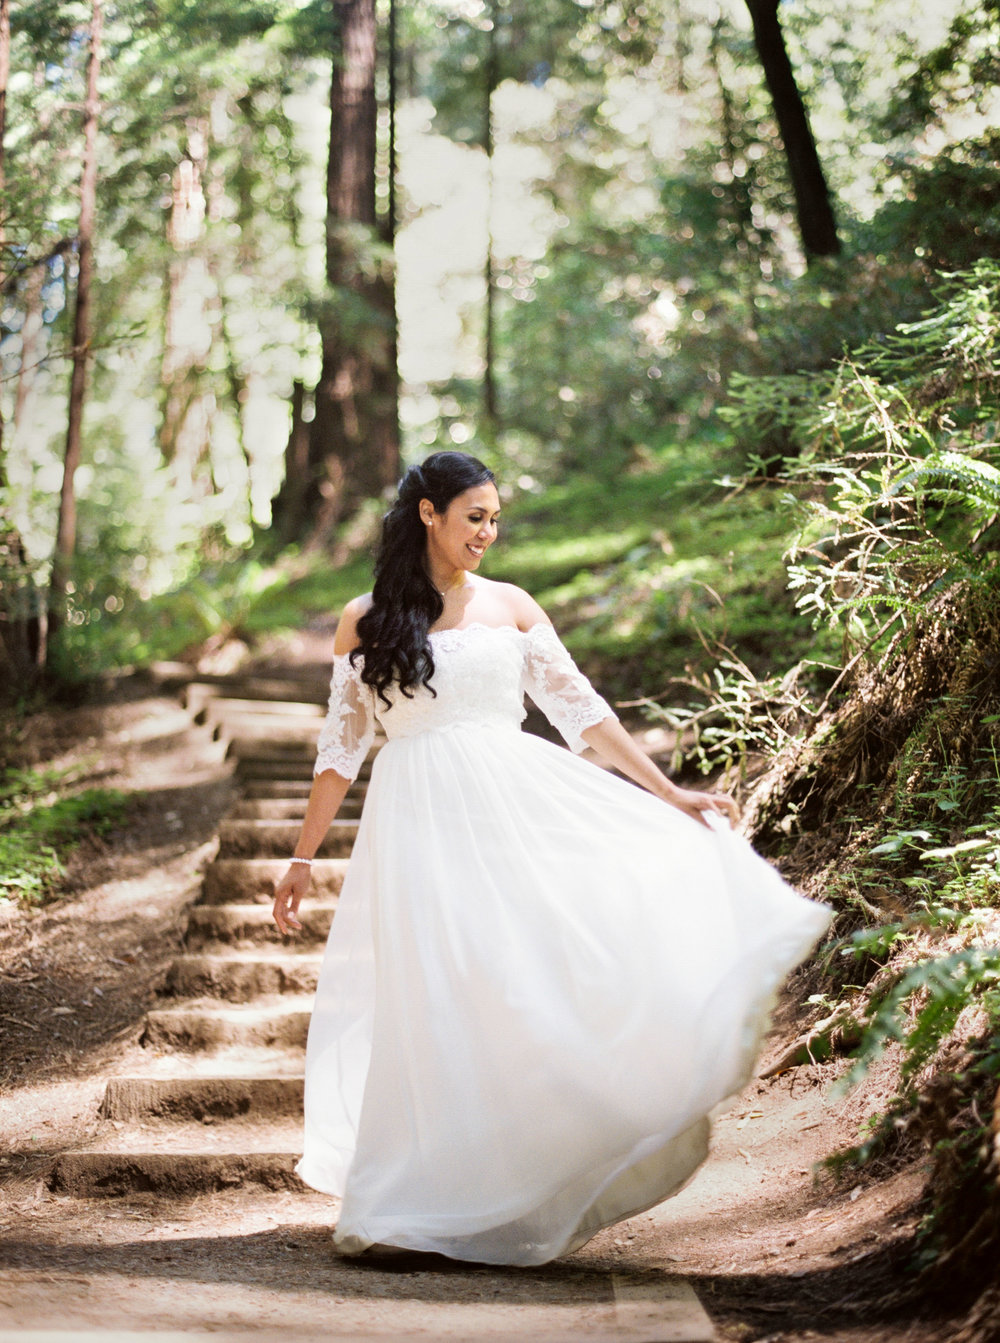 013_Krysten-Crebin-Muir-Woods-Elopement-Wedding-Photographer.jpg